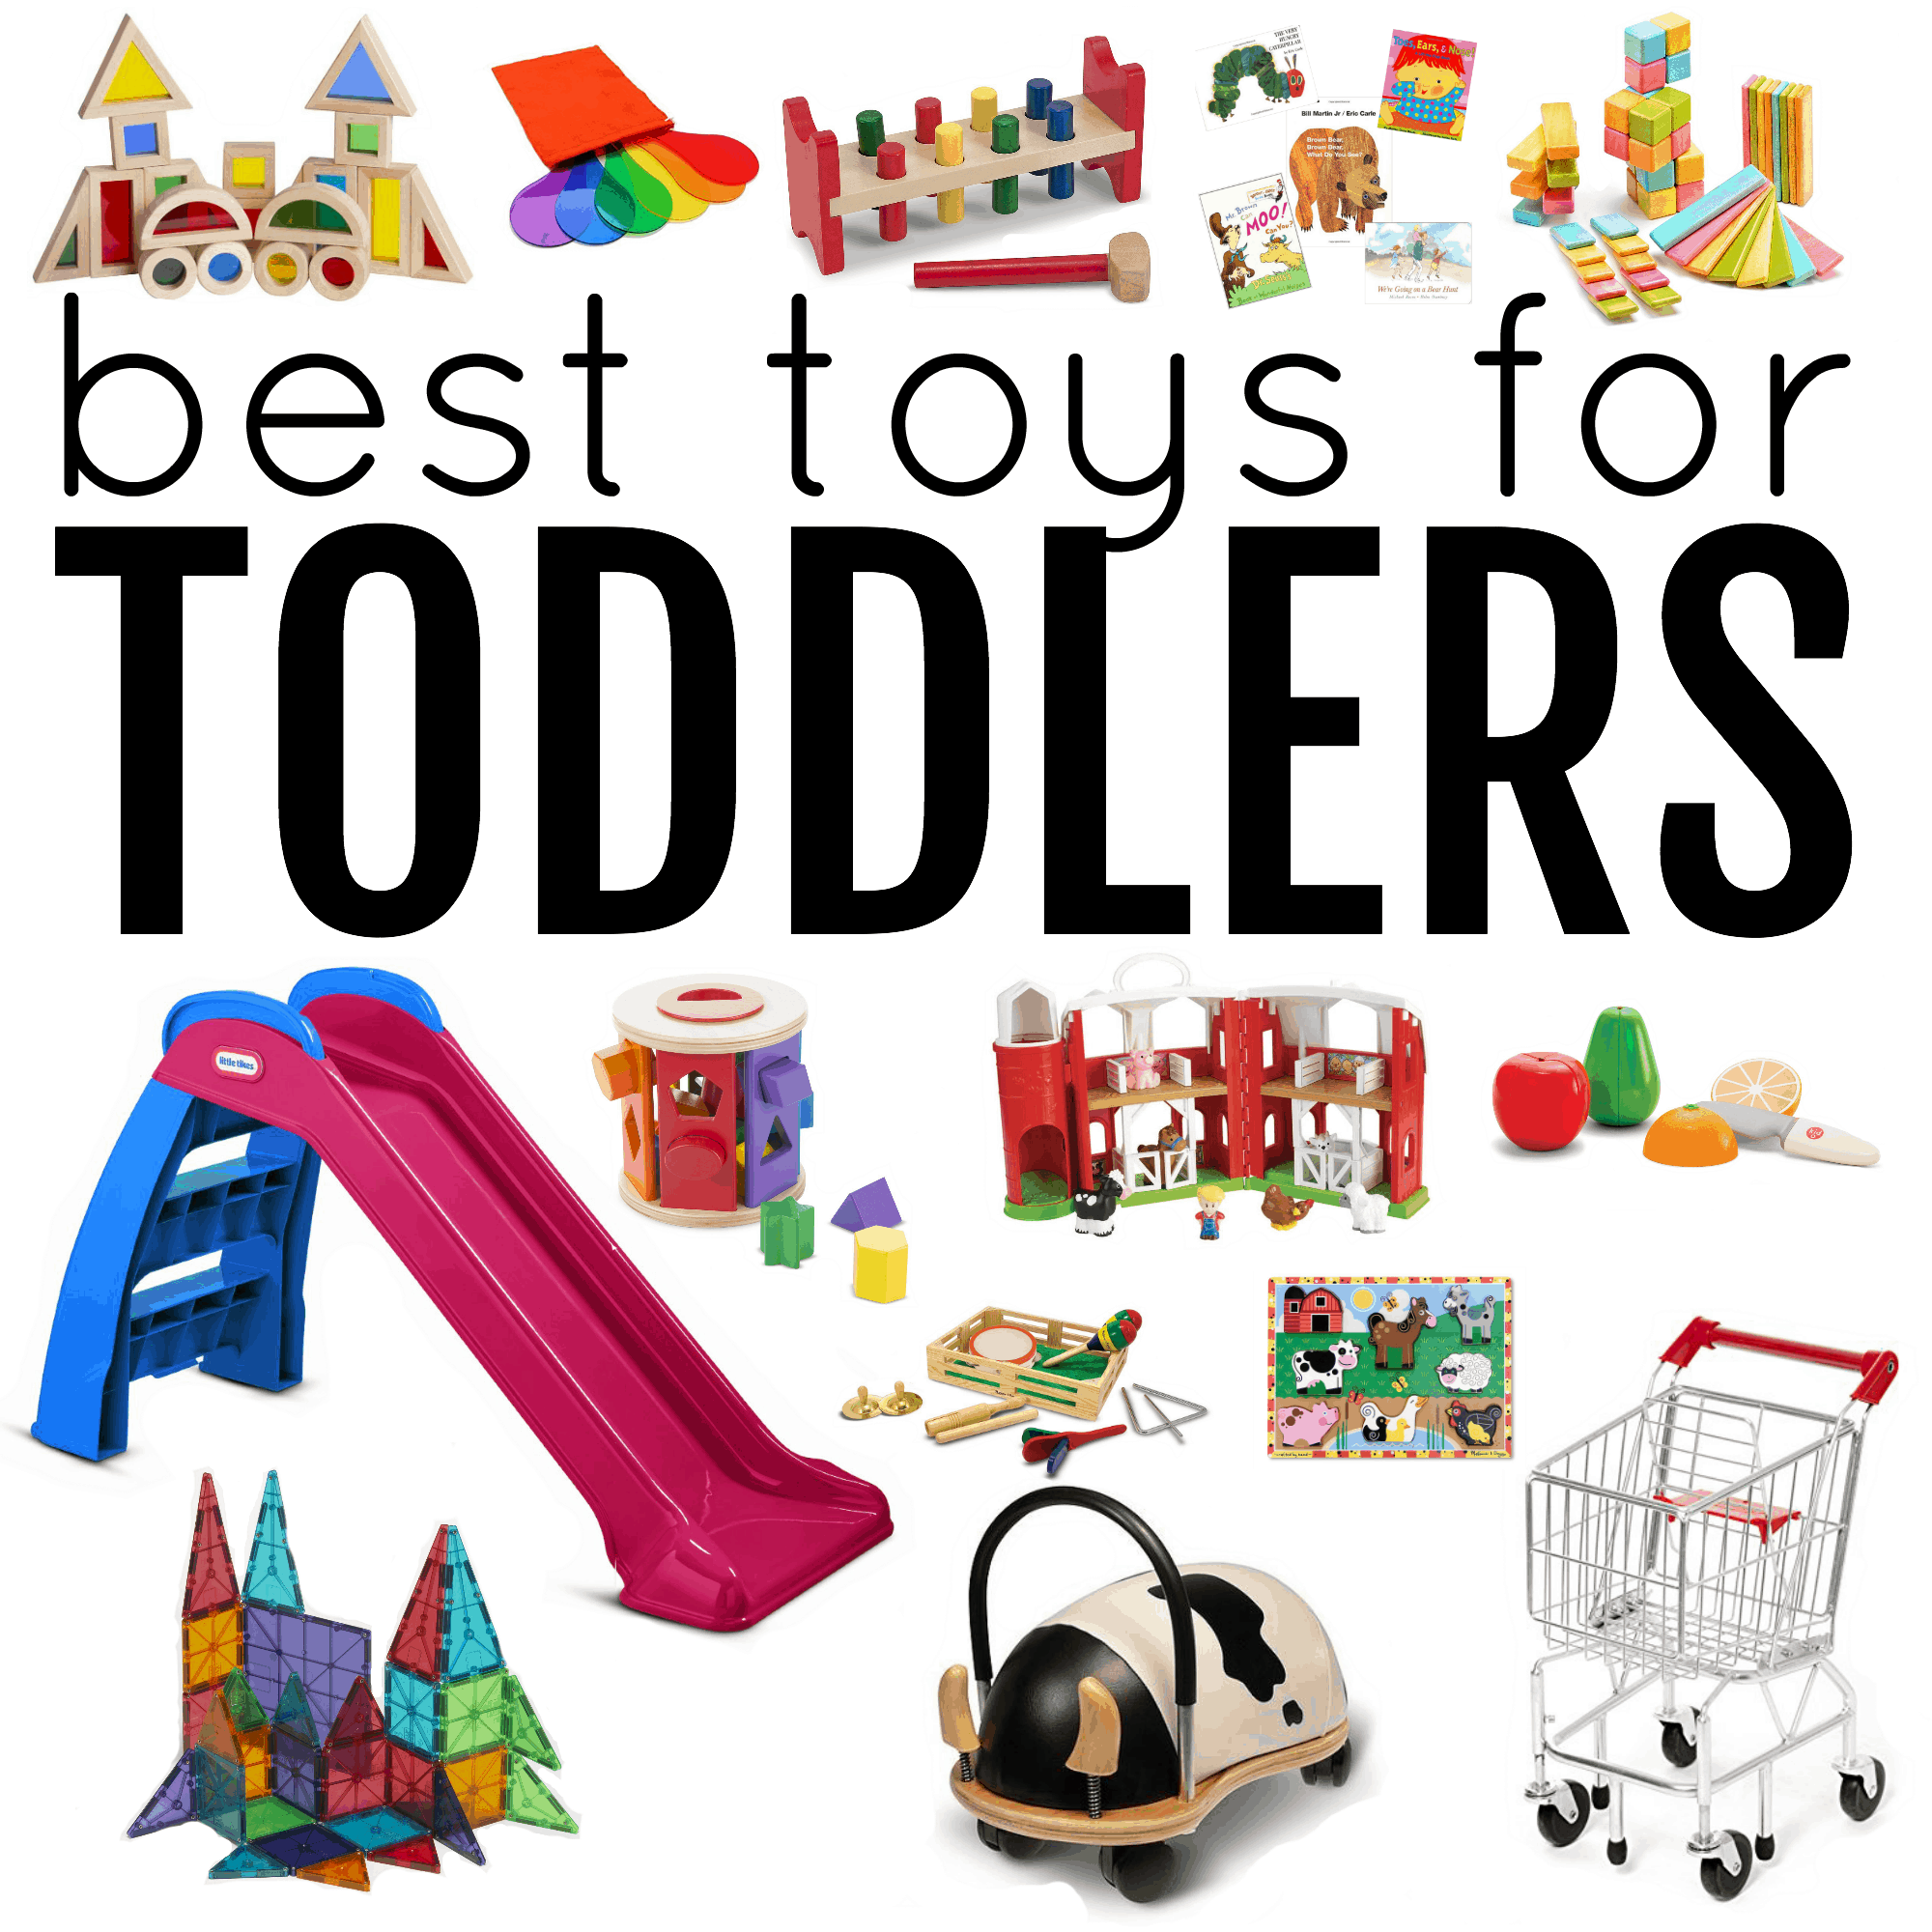 Toys For Toddlers : Best toys for toddlers i can teach my child